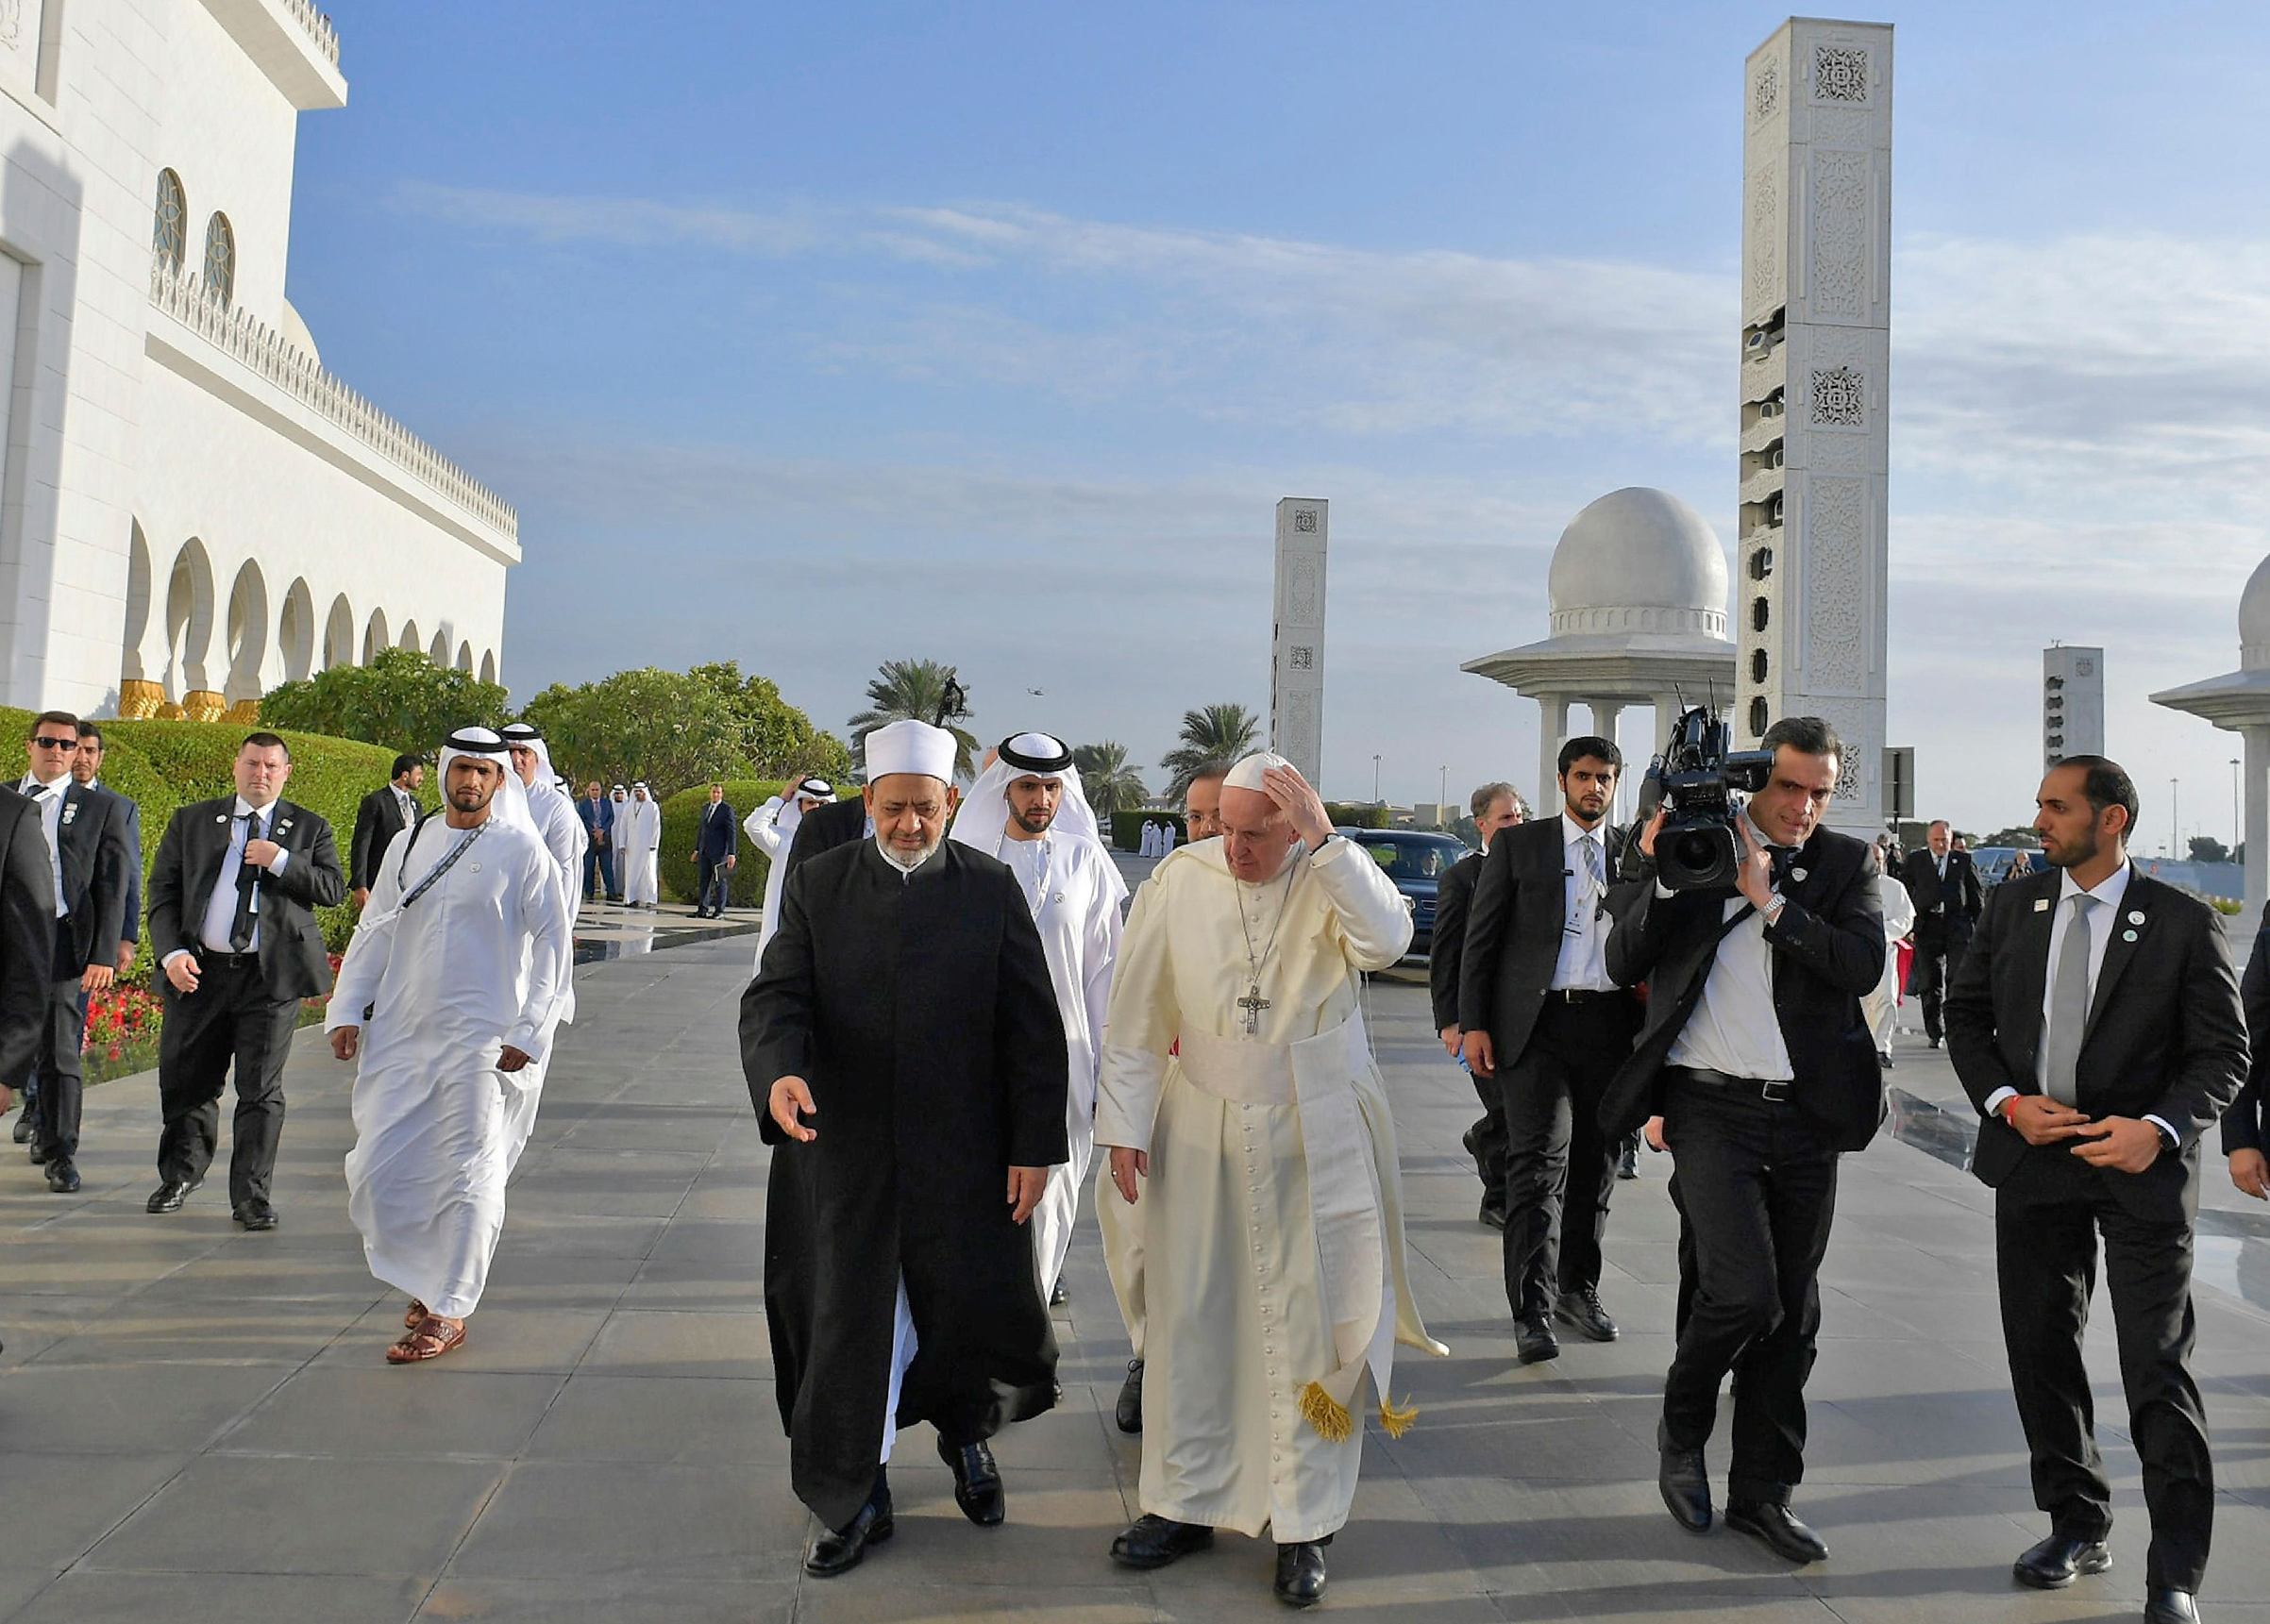 Pope Francis with Ahmed el-Tayeb, the Grand Imam of al-Azhar, at an Abu Dhabi mosque on Feb. 4